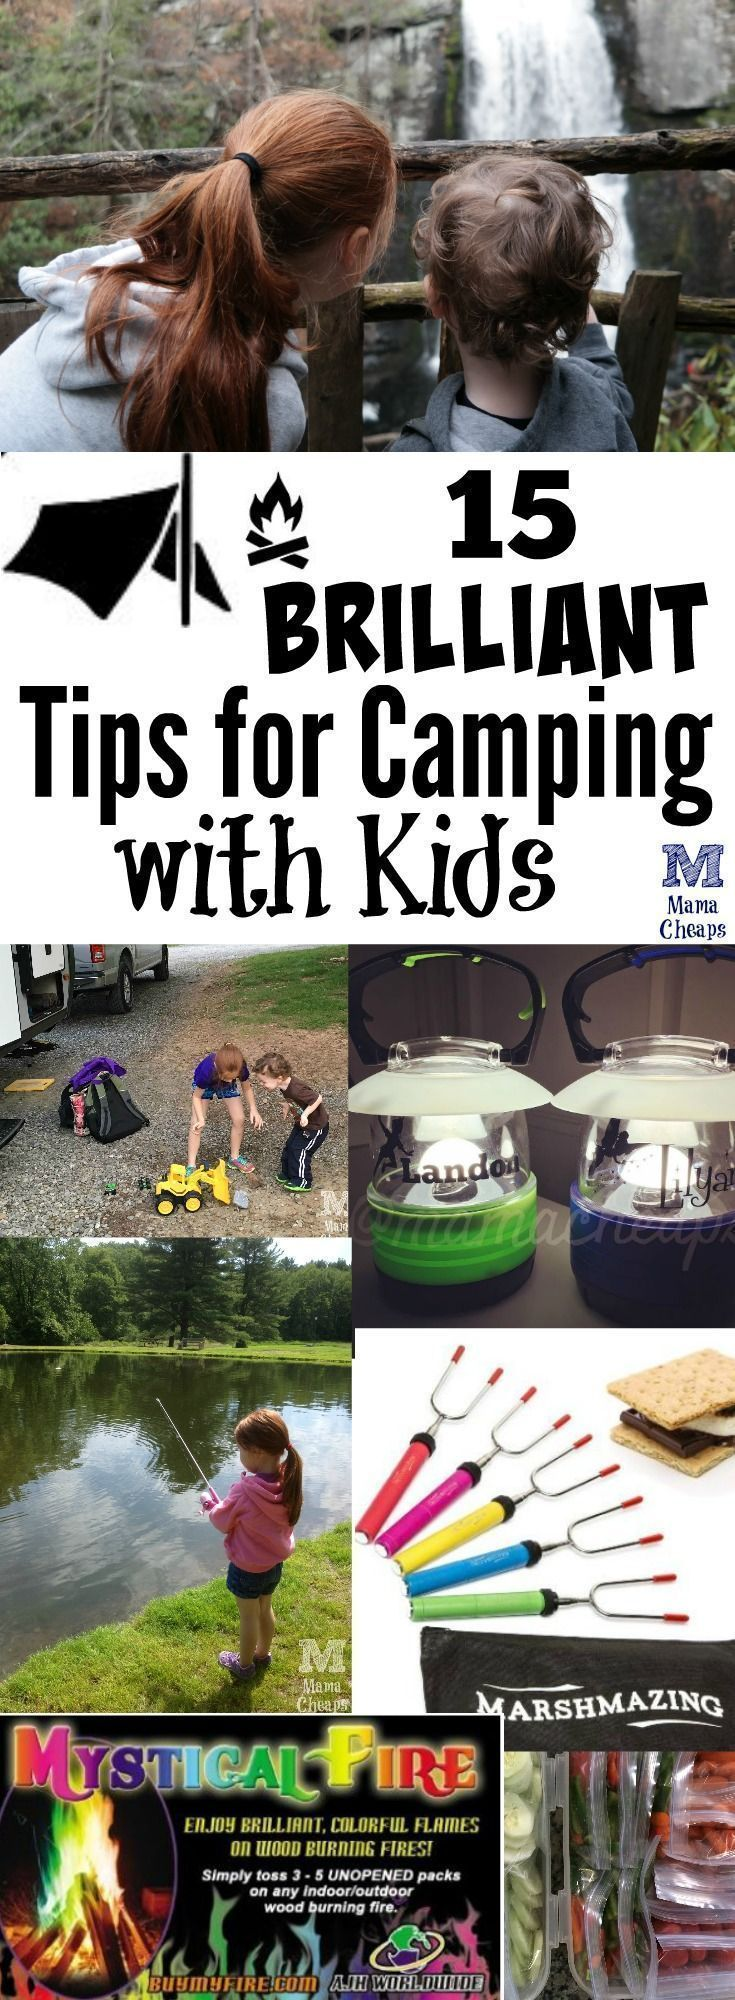 15 Brilliant Tips for Camping with Kids | Mama Cheaps®